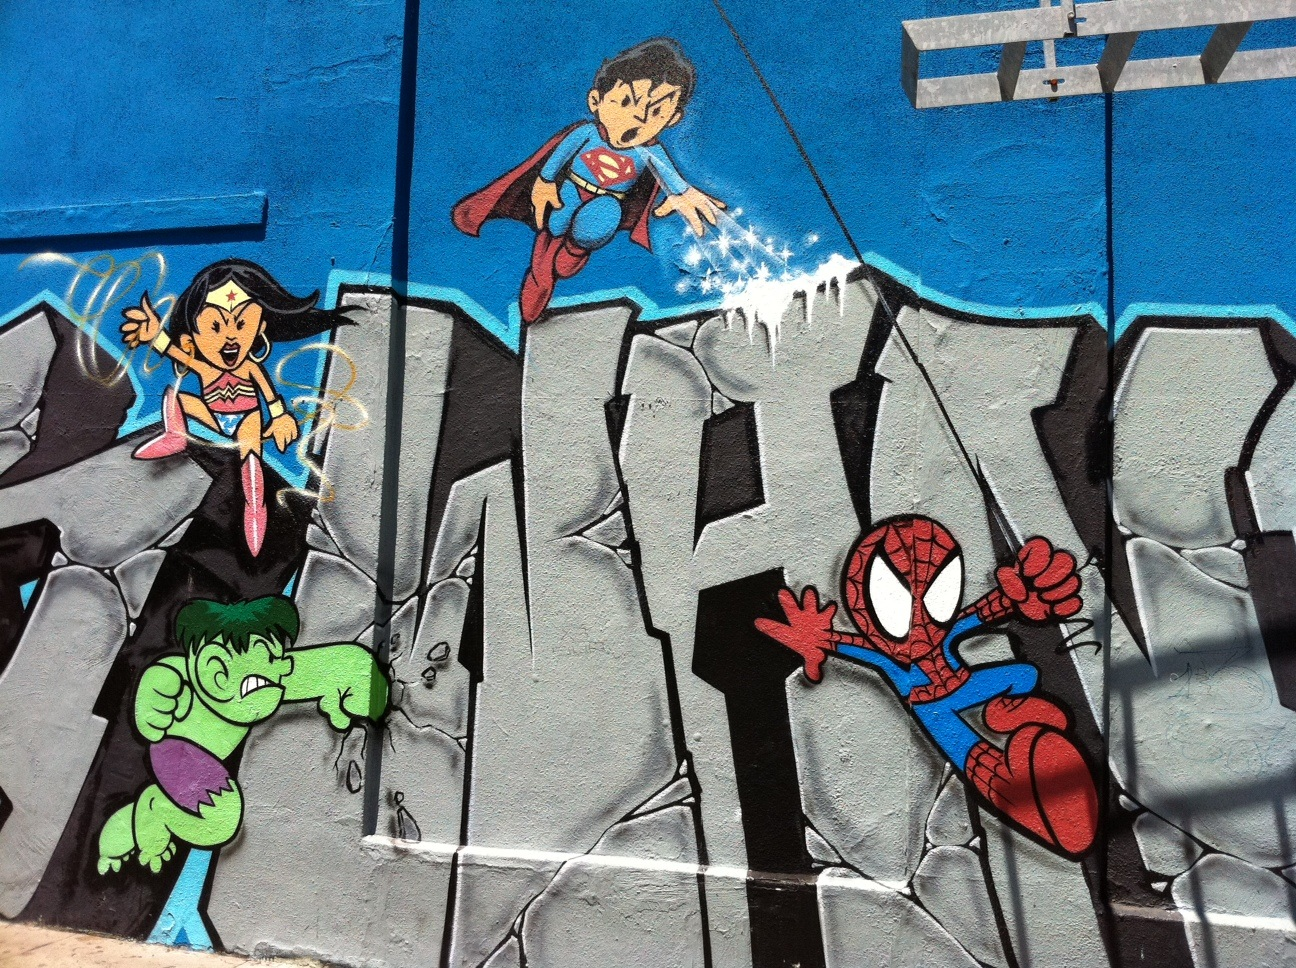 I Really Dig The Stylized Superheroes In This Massive Graffiti Piece In San Franciscos Mission District I Didnt See The Artists Name And The Background